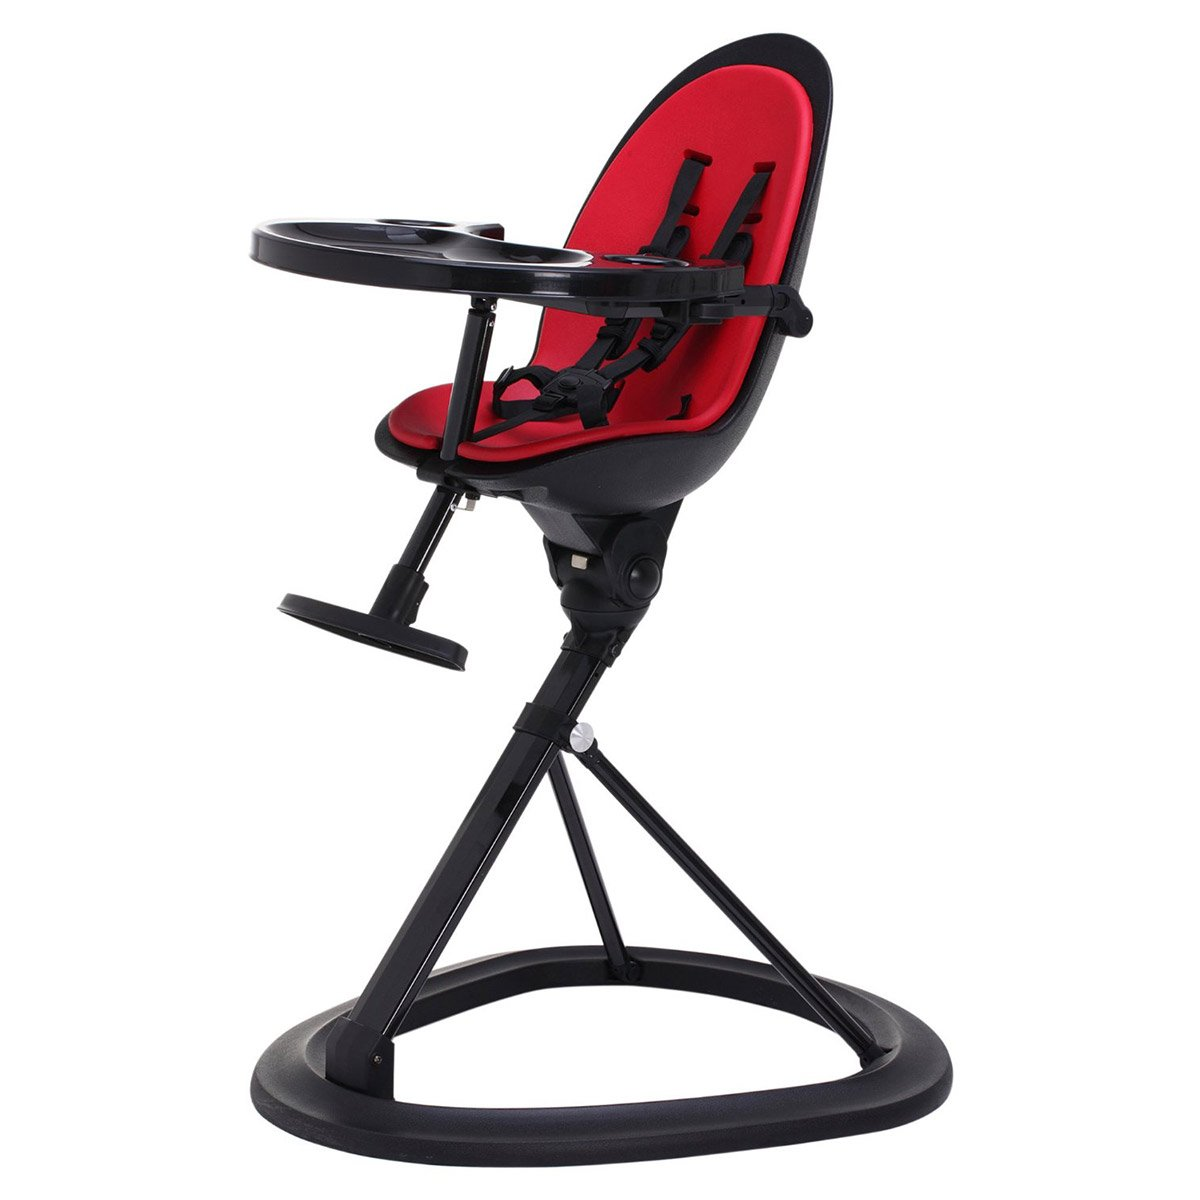 Exceptionnel Ickle Bubba Orb Baby Highchair   Feature Packed Feeding High Chair In Red  On Black Colour Combination: Amazon.co.uk: Baby